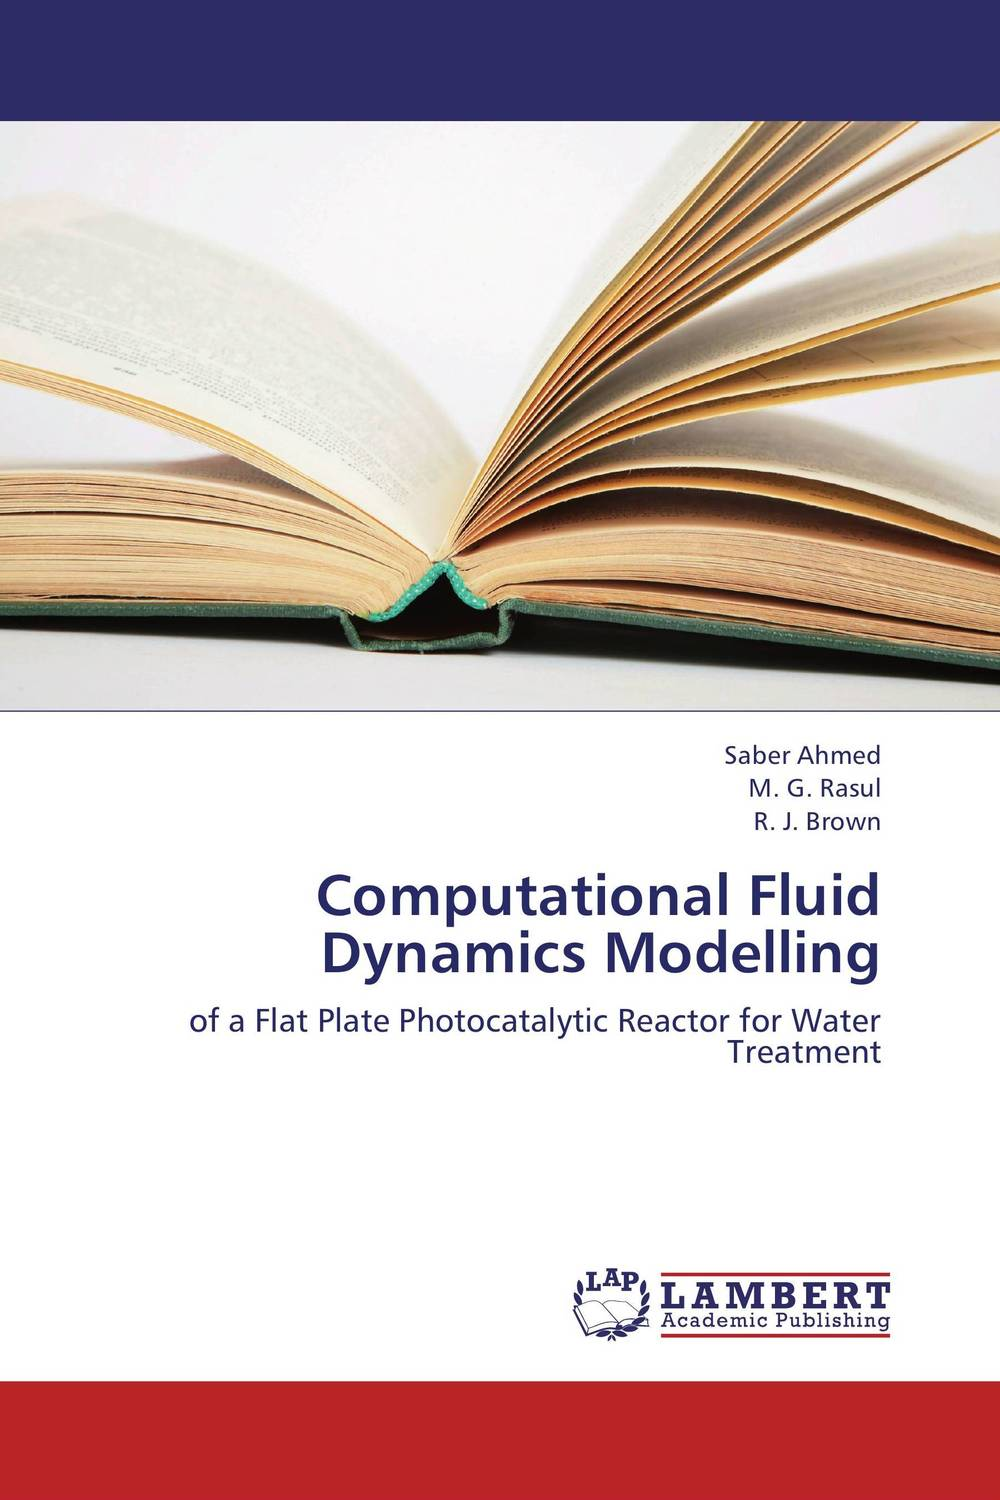 Computational Fluid Dynamics Modelling imperfectly stirred reactor modelling of recirculating reactive flows